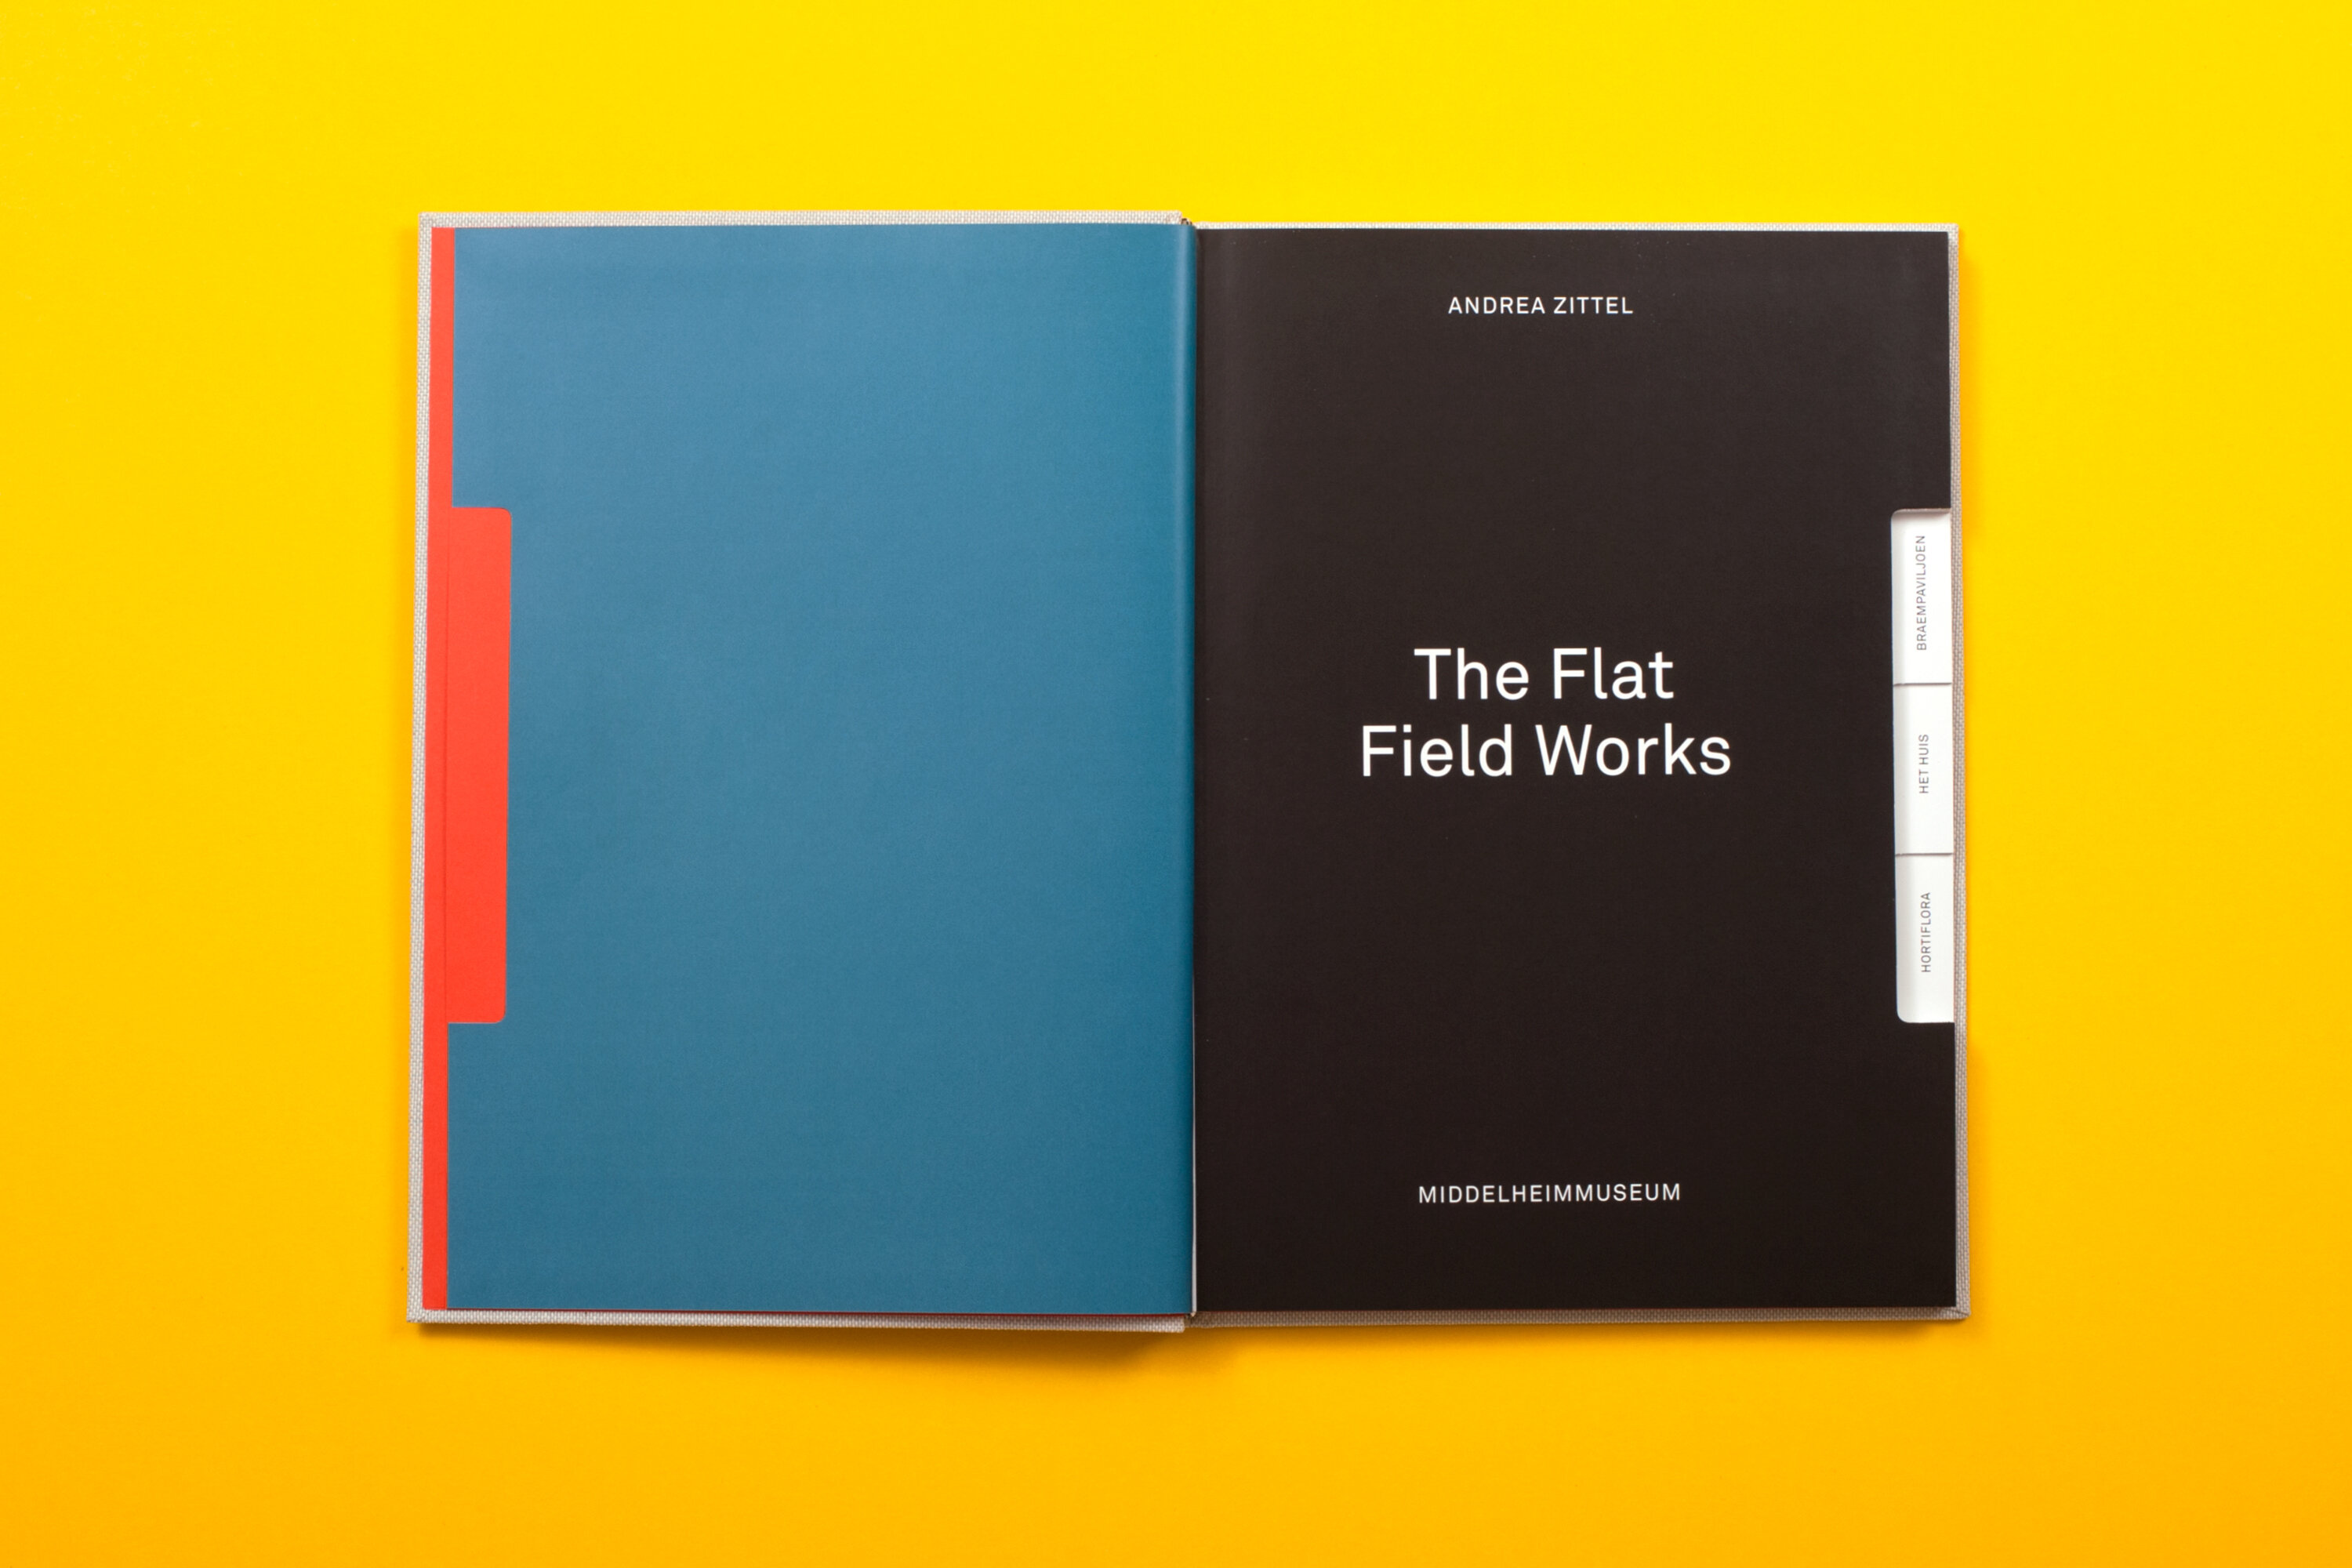 Catapult middelheim museum andrea zittel the flat field works catalogue design for the exhibition the flat field works with work of american artist andrea zittel at the middelheim museum publicscrutiny Gallery